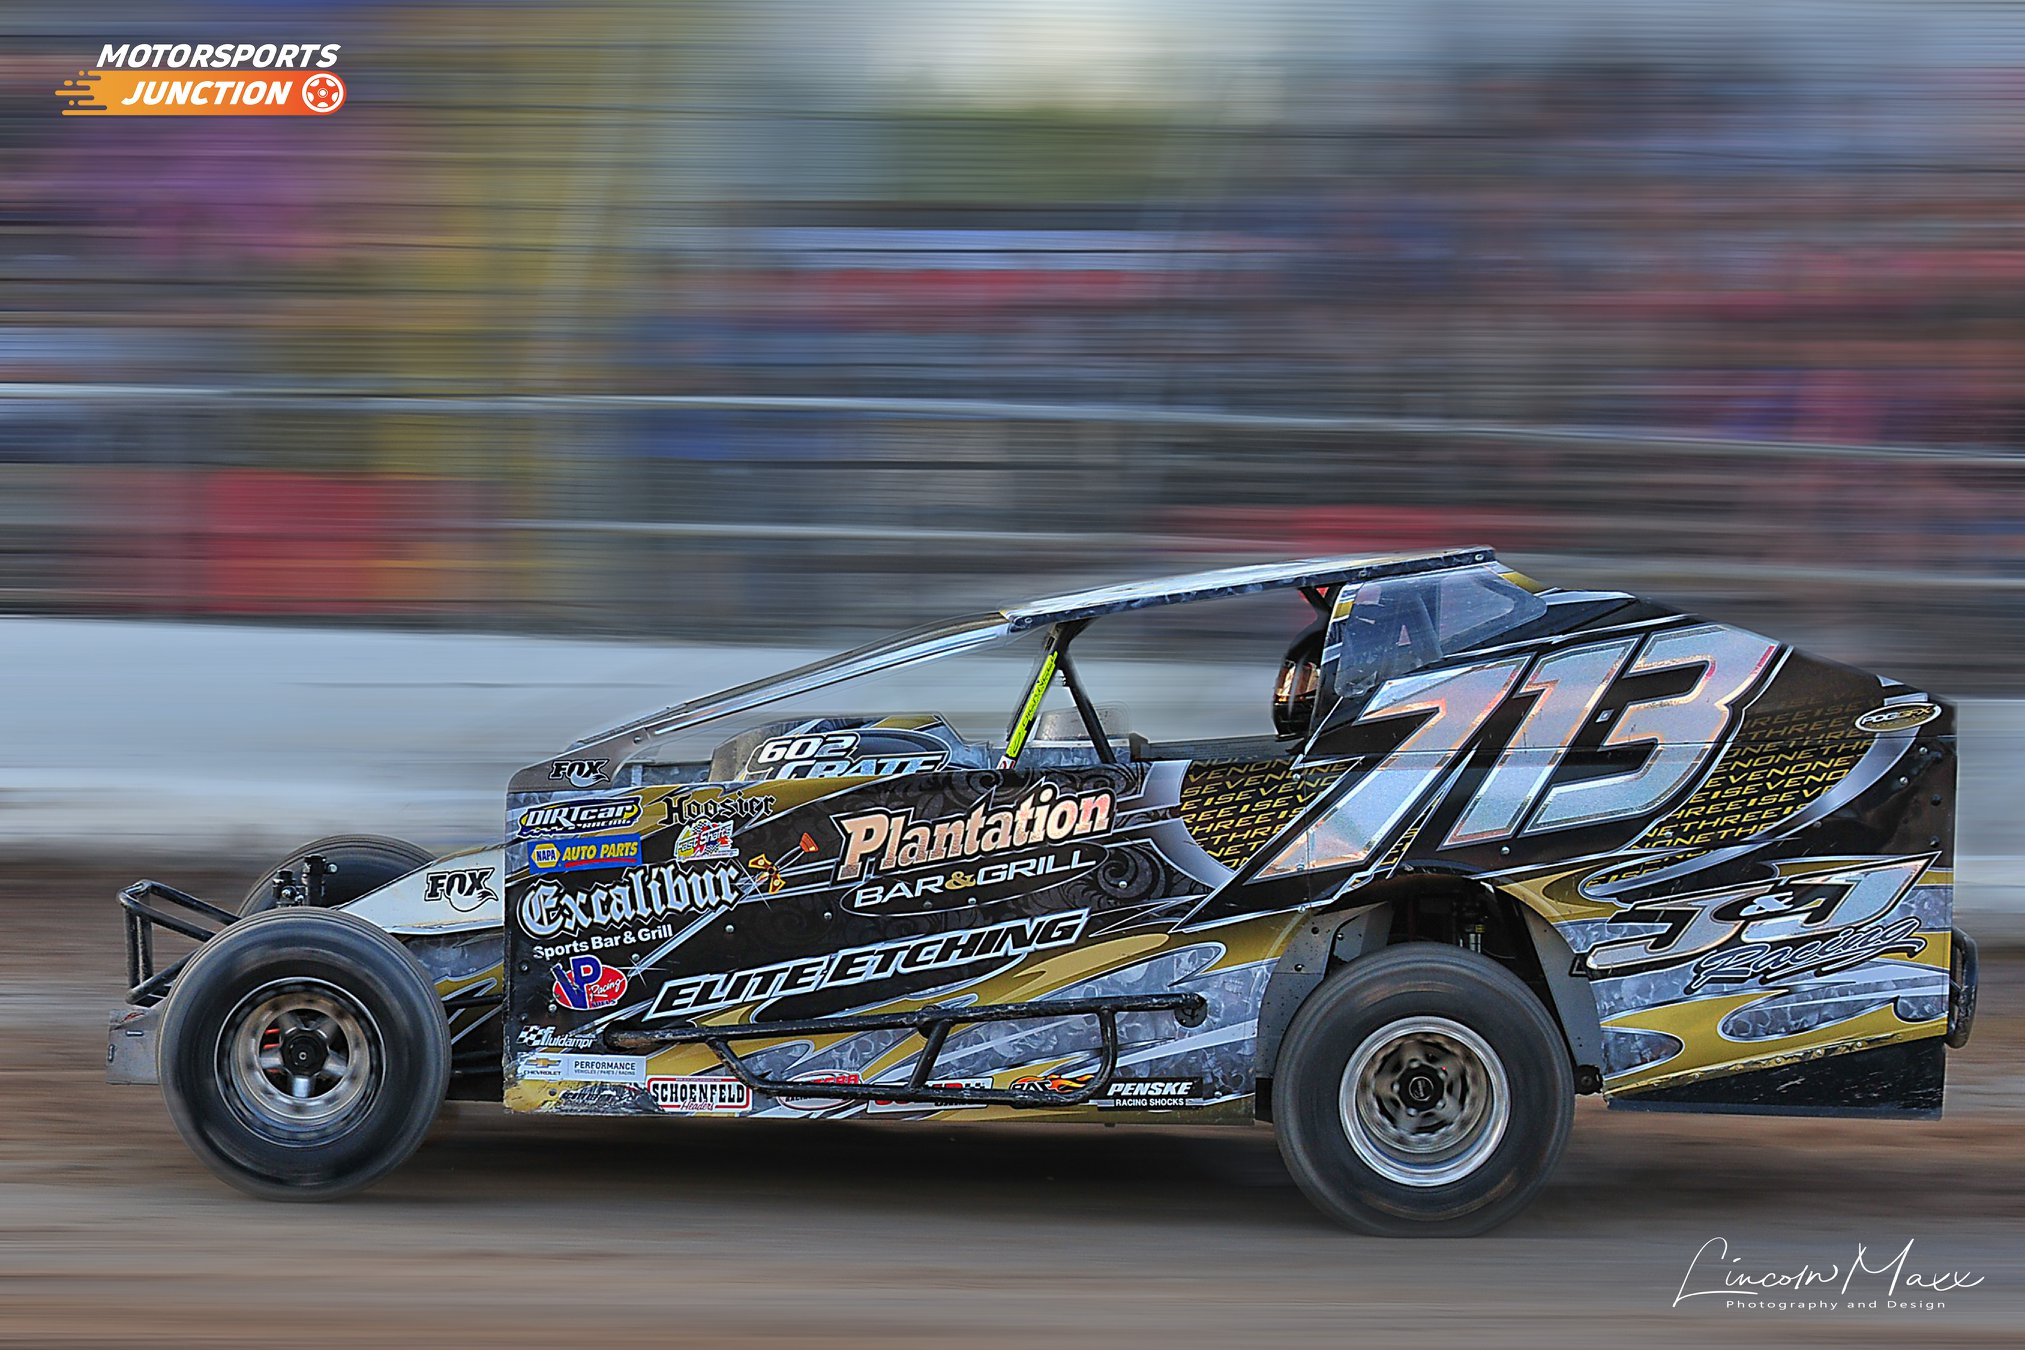 Action photo from Outlaw Speedway by Motorsports Junction